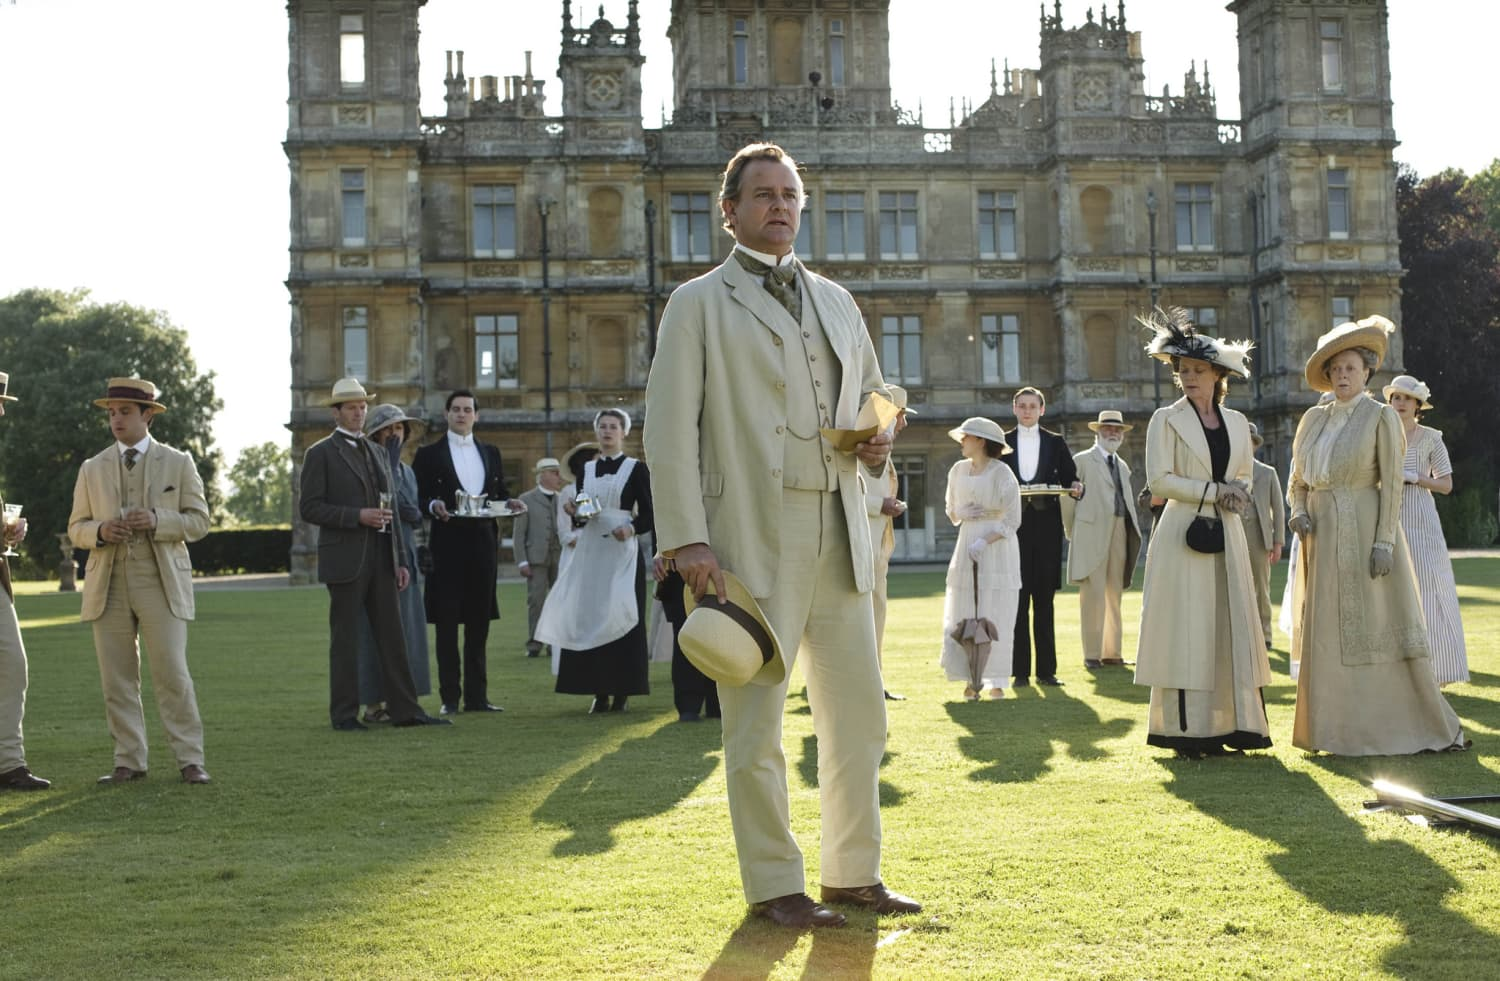 4 Shows to Stream If You've Seen All of 'Downton Abbey'